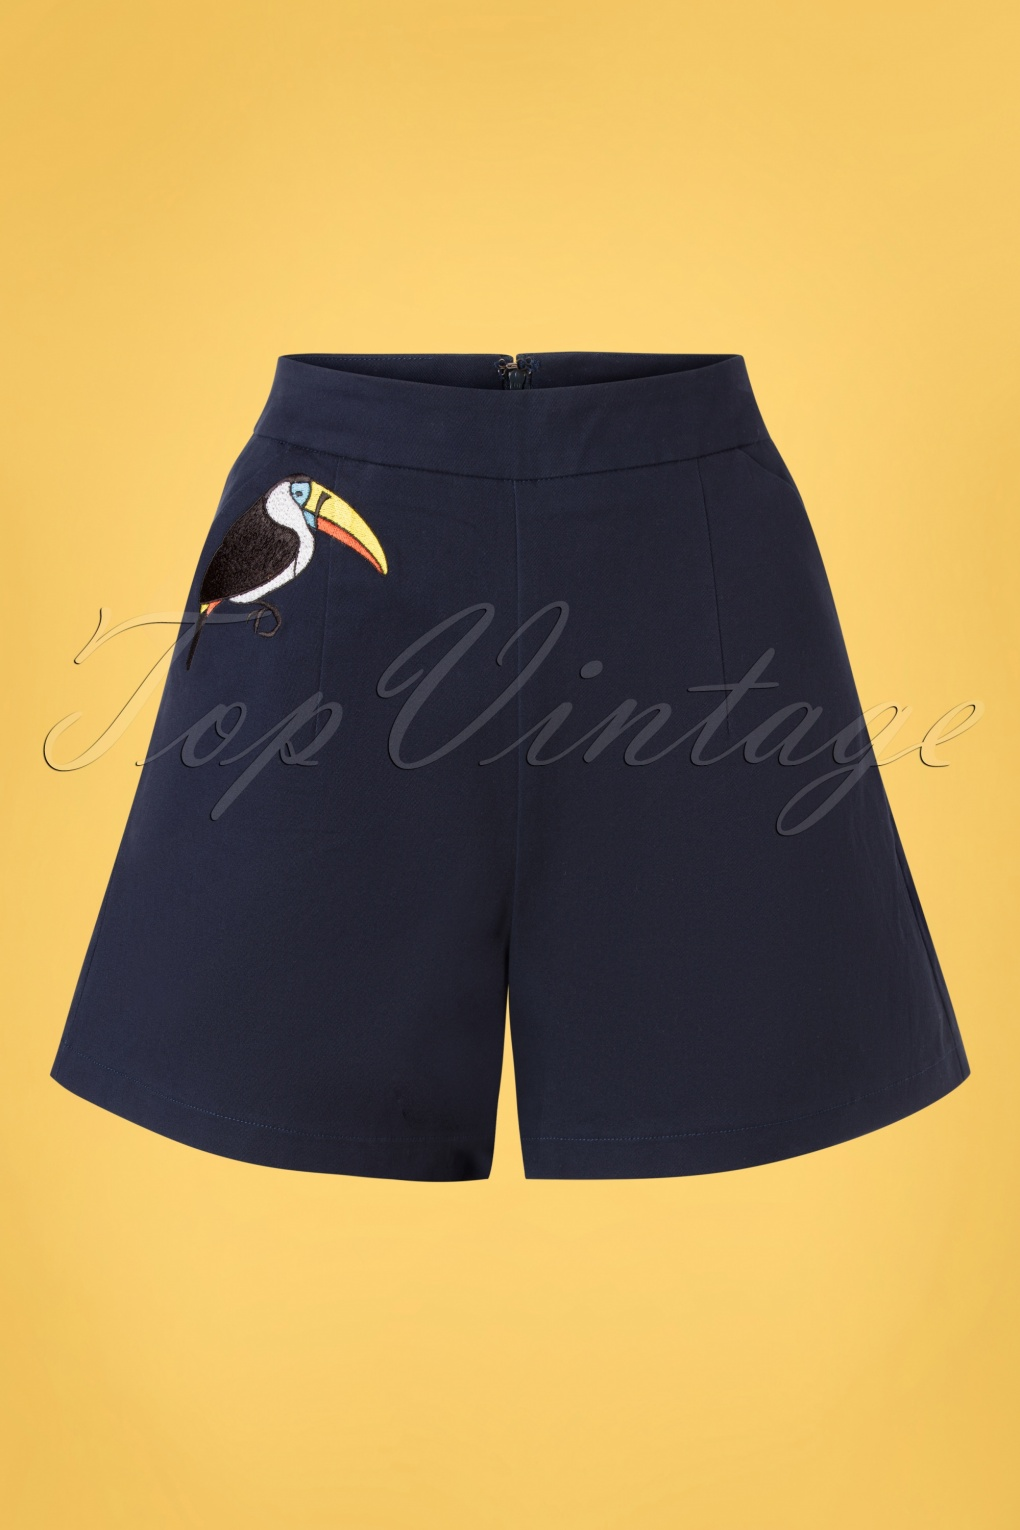 Vintage Shorts, Culottes,  Capris History 50s Toucan Shorts in Navy £34.37 AT vintagedancer.com